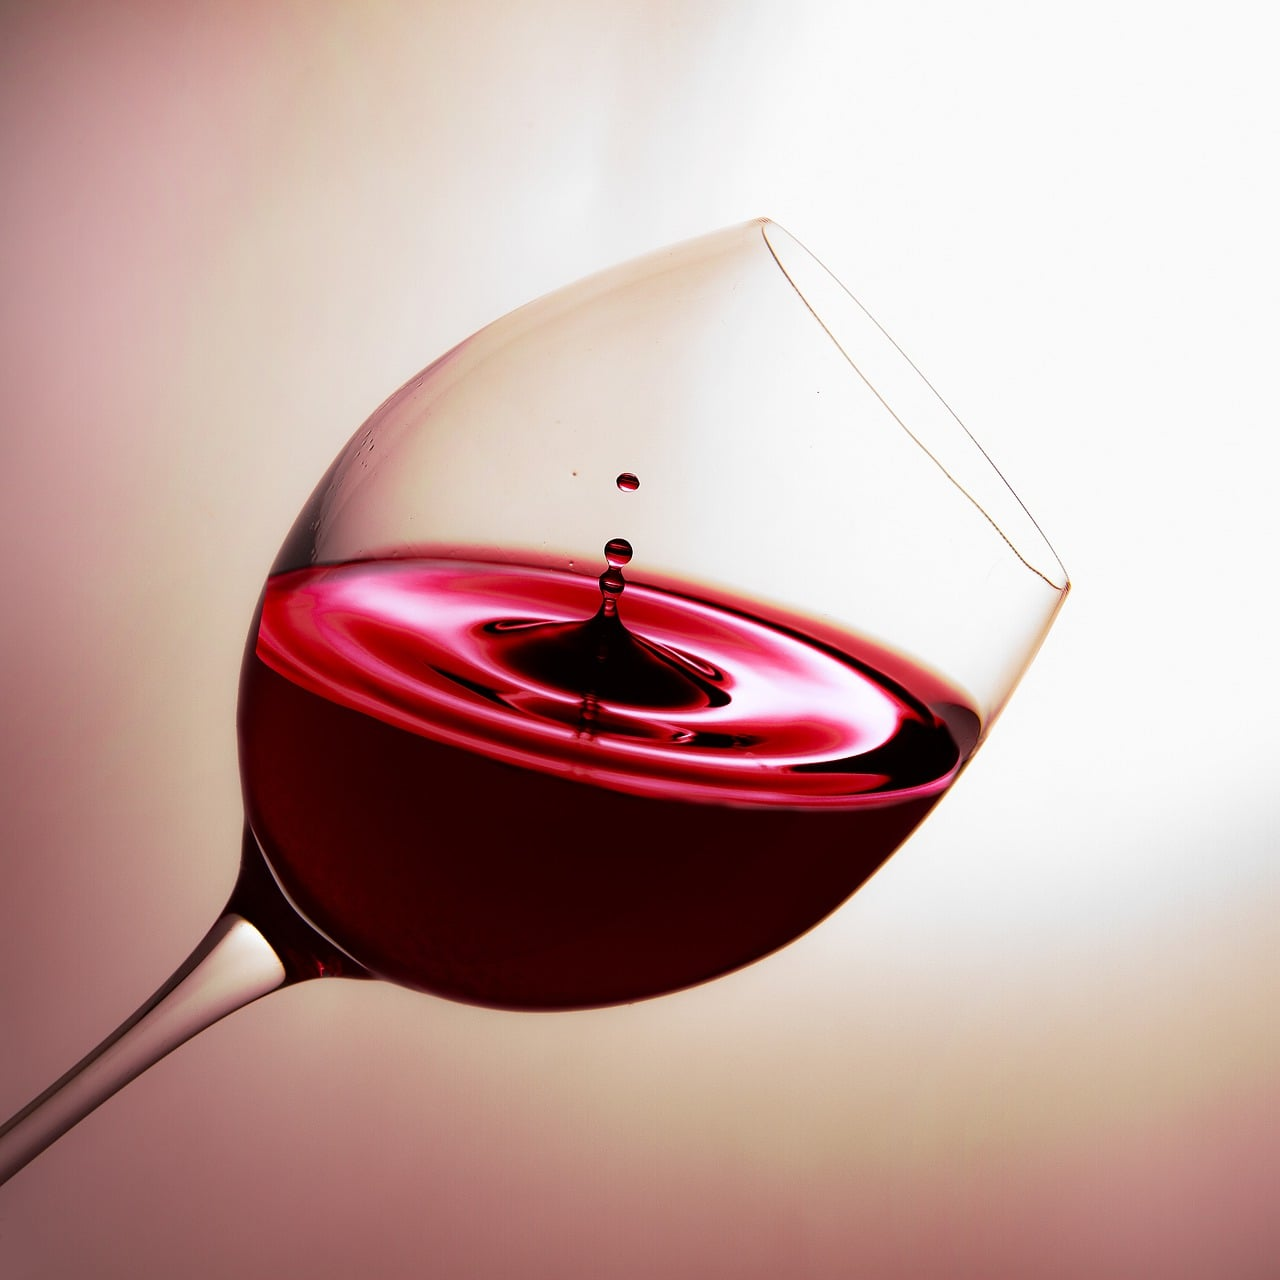 Antioxidant in Red Wine